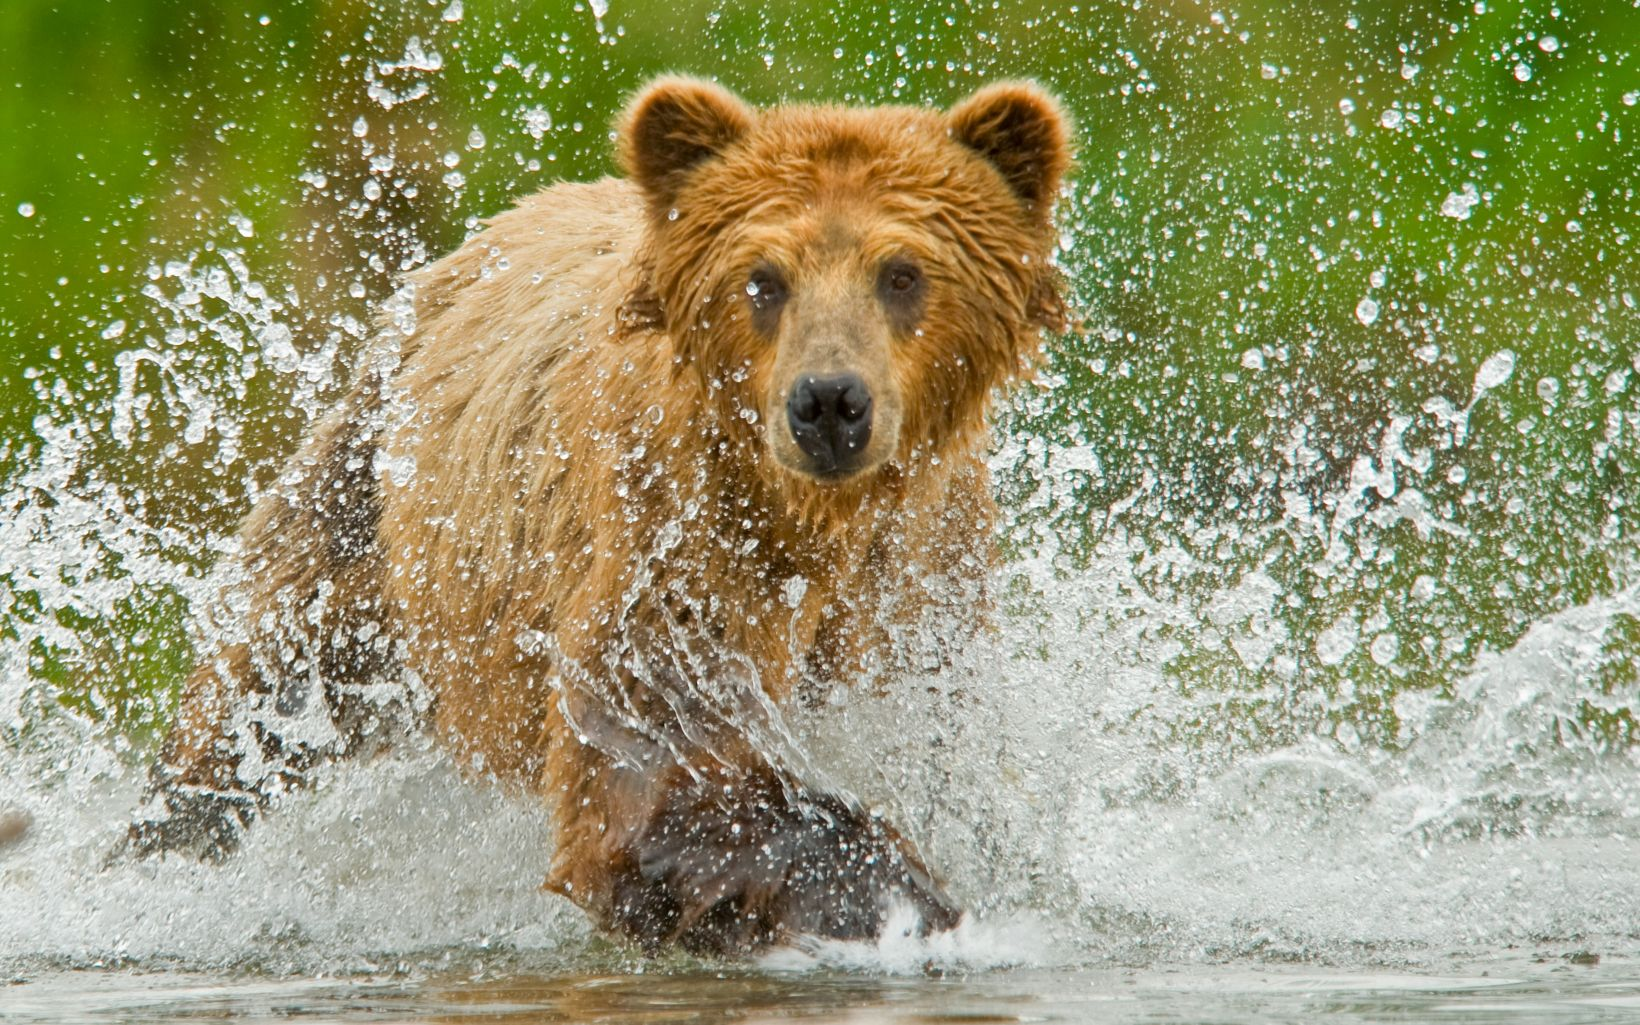 Brown bear fishing for salmon in Alaska